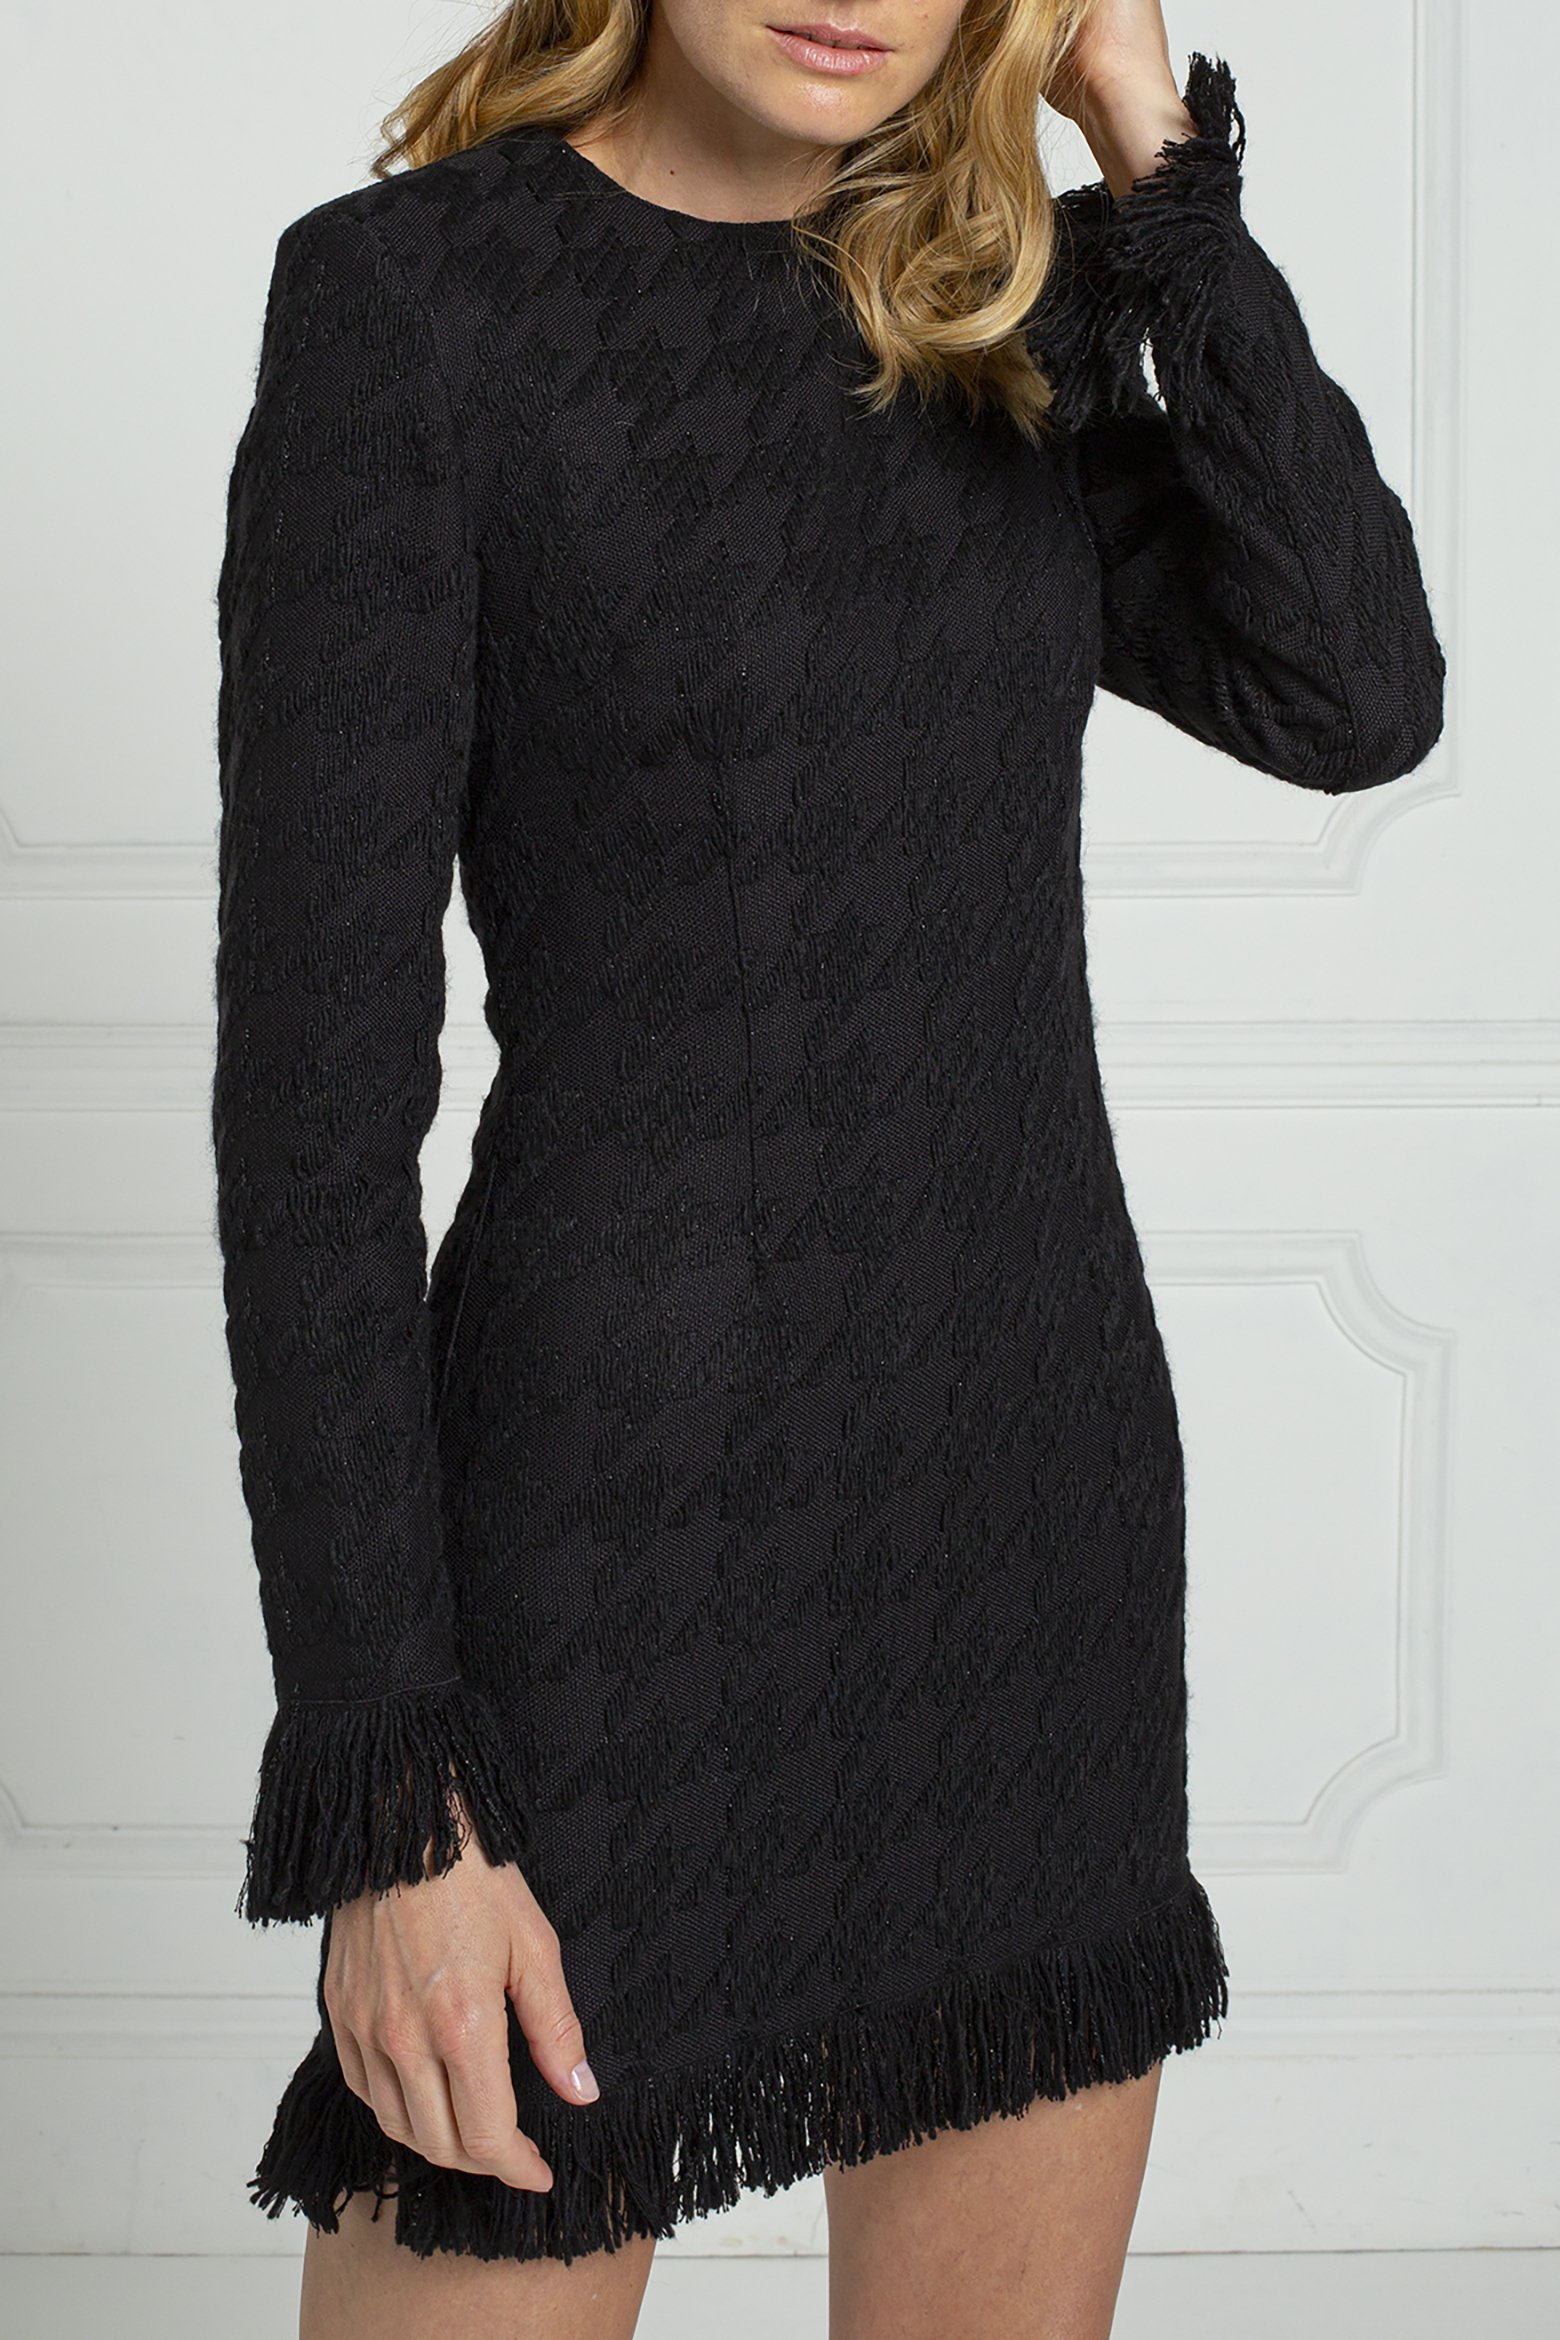 thom-laurence-houndstooth-dress-black-frayed-hem-french-jacquard-8